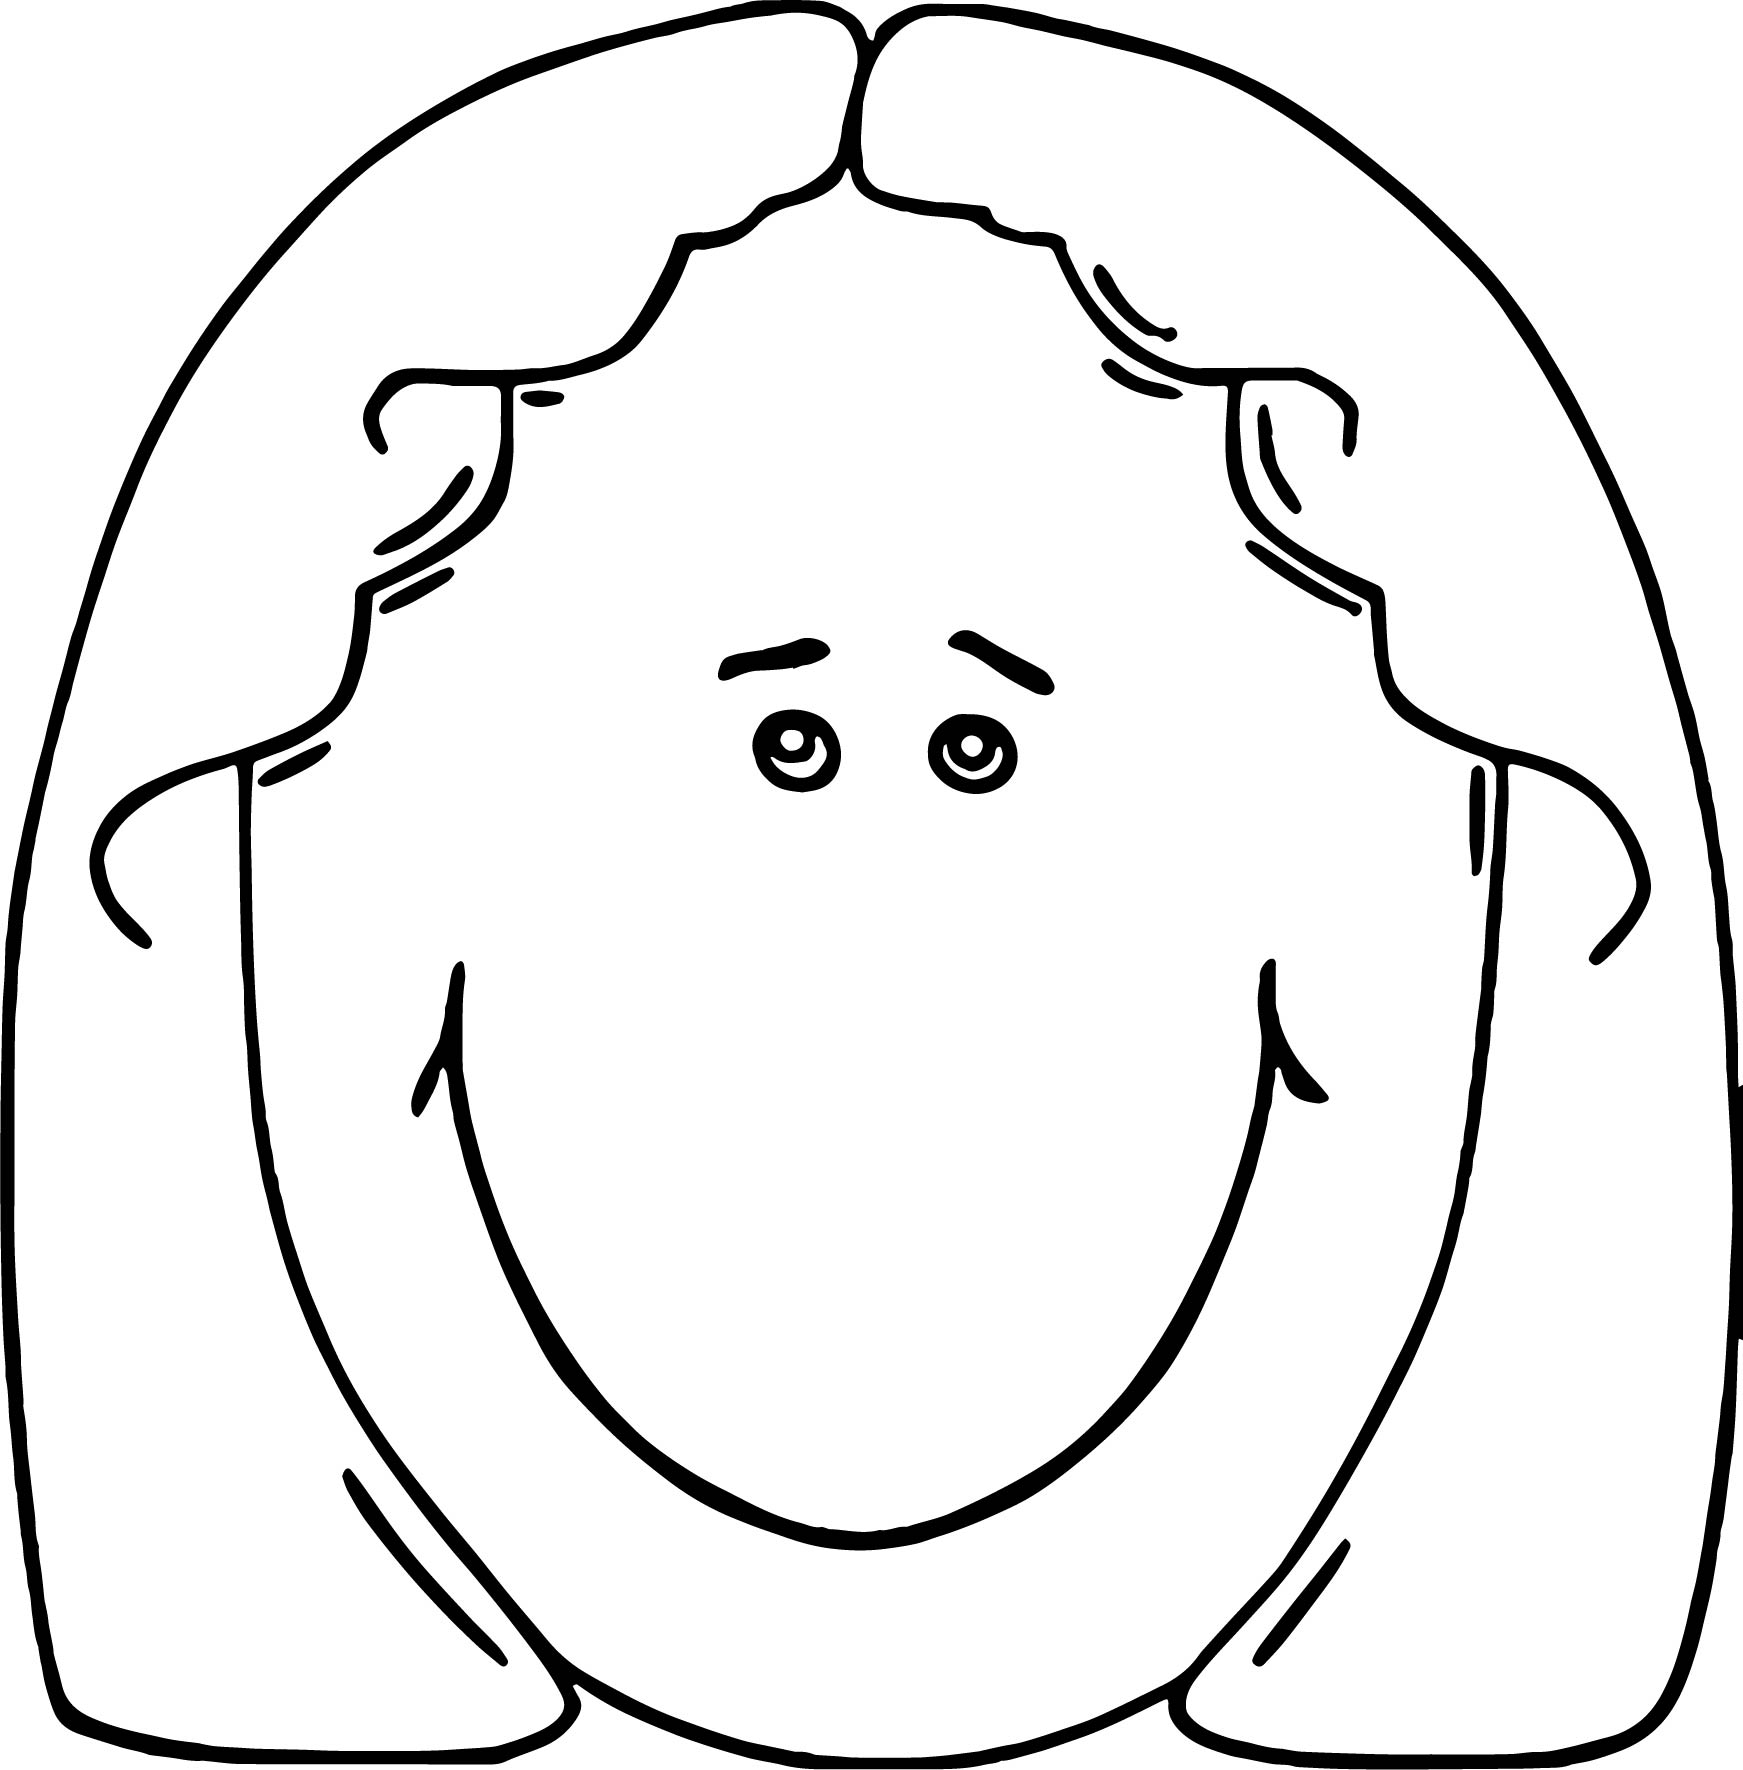 Face Lady Face Cartoon Clip Art Coloring Page (2)